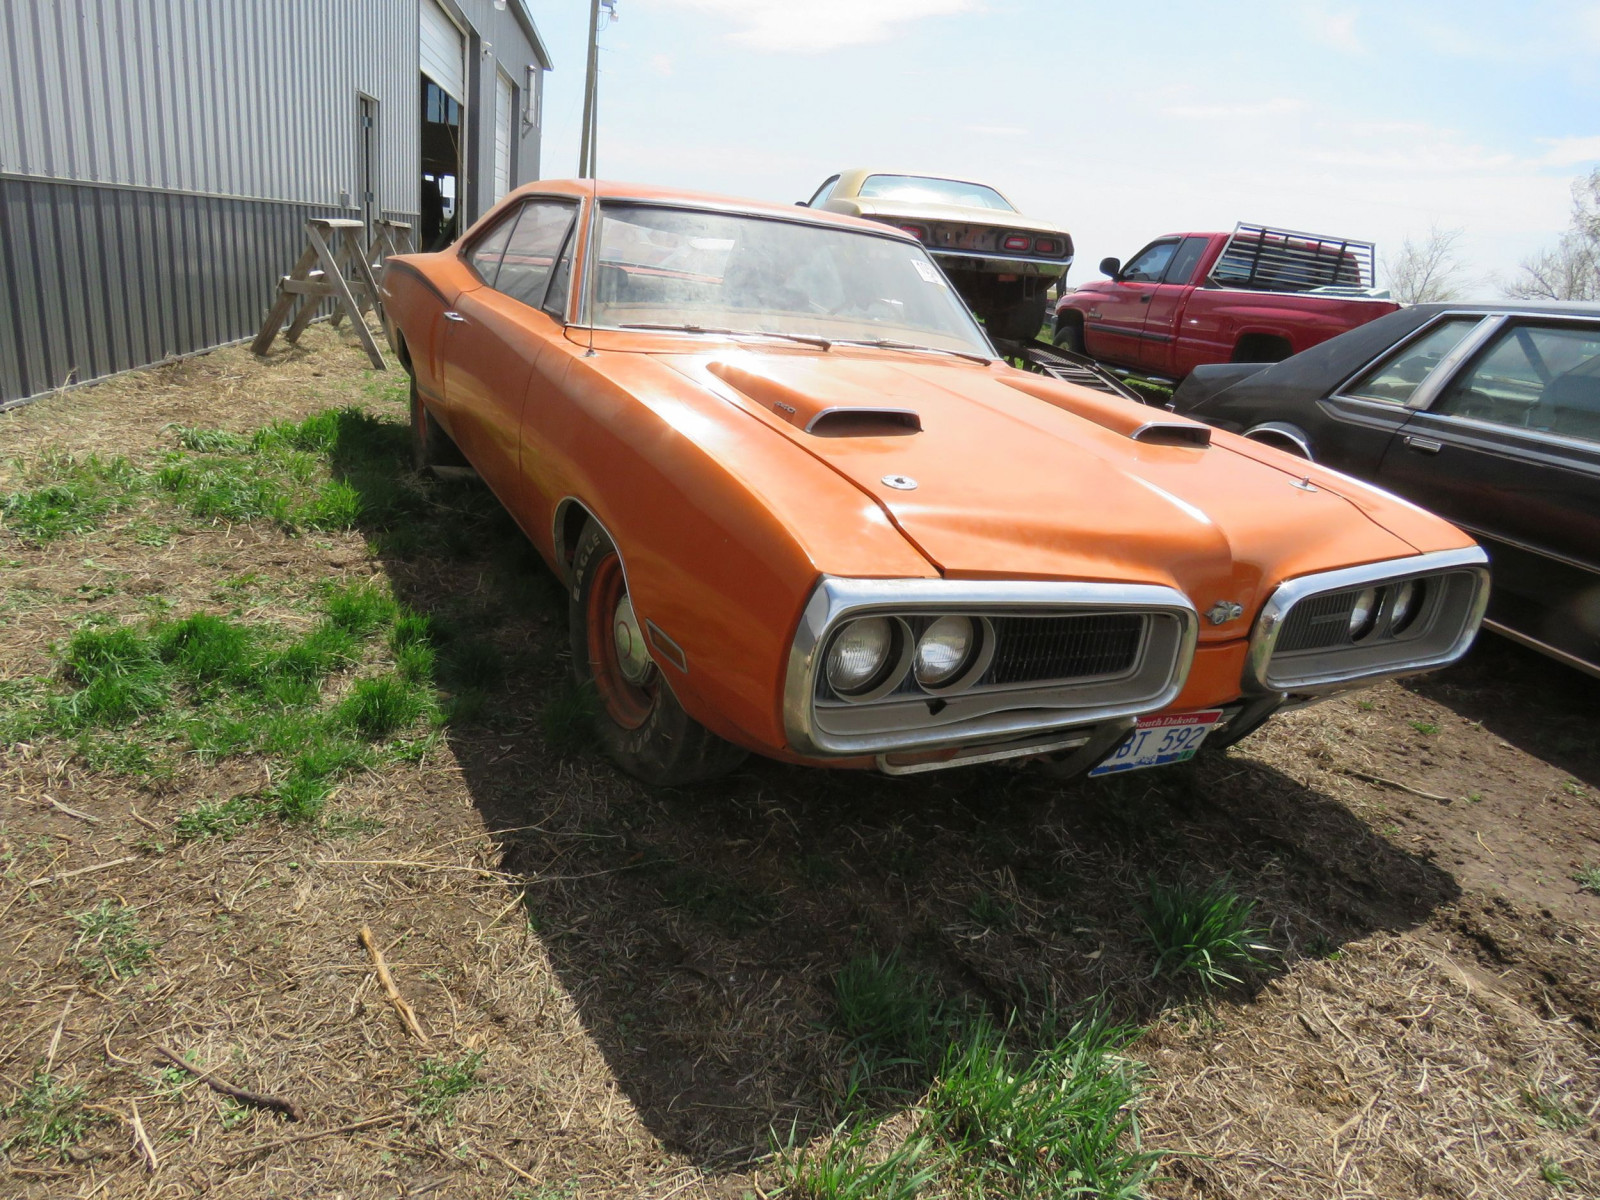 1970 Dodge Super Bee 440 6 Pack Coupe - Image 1